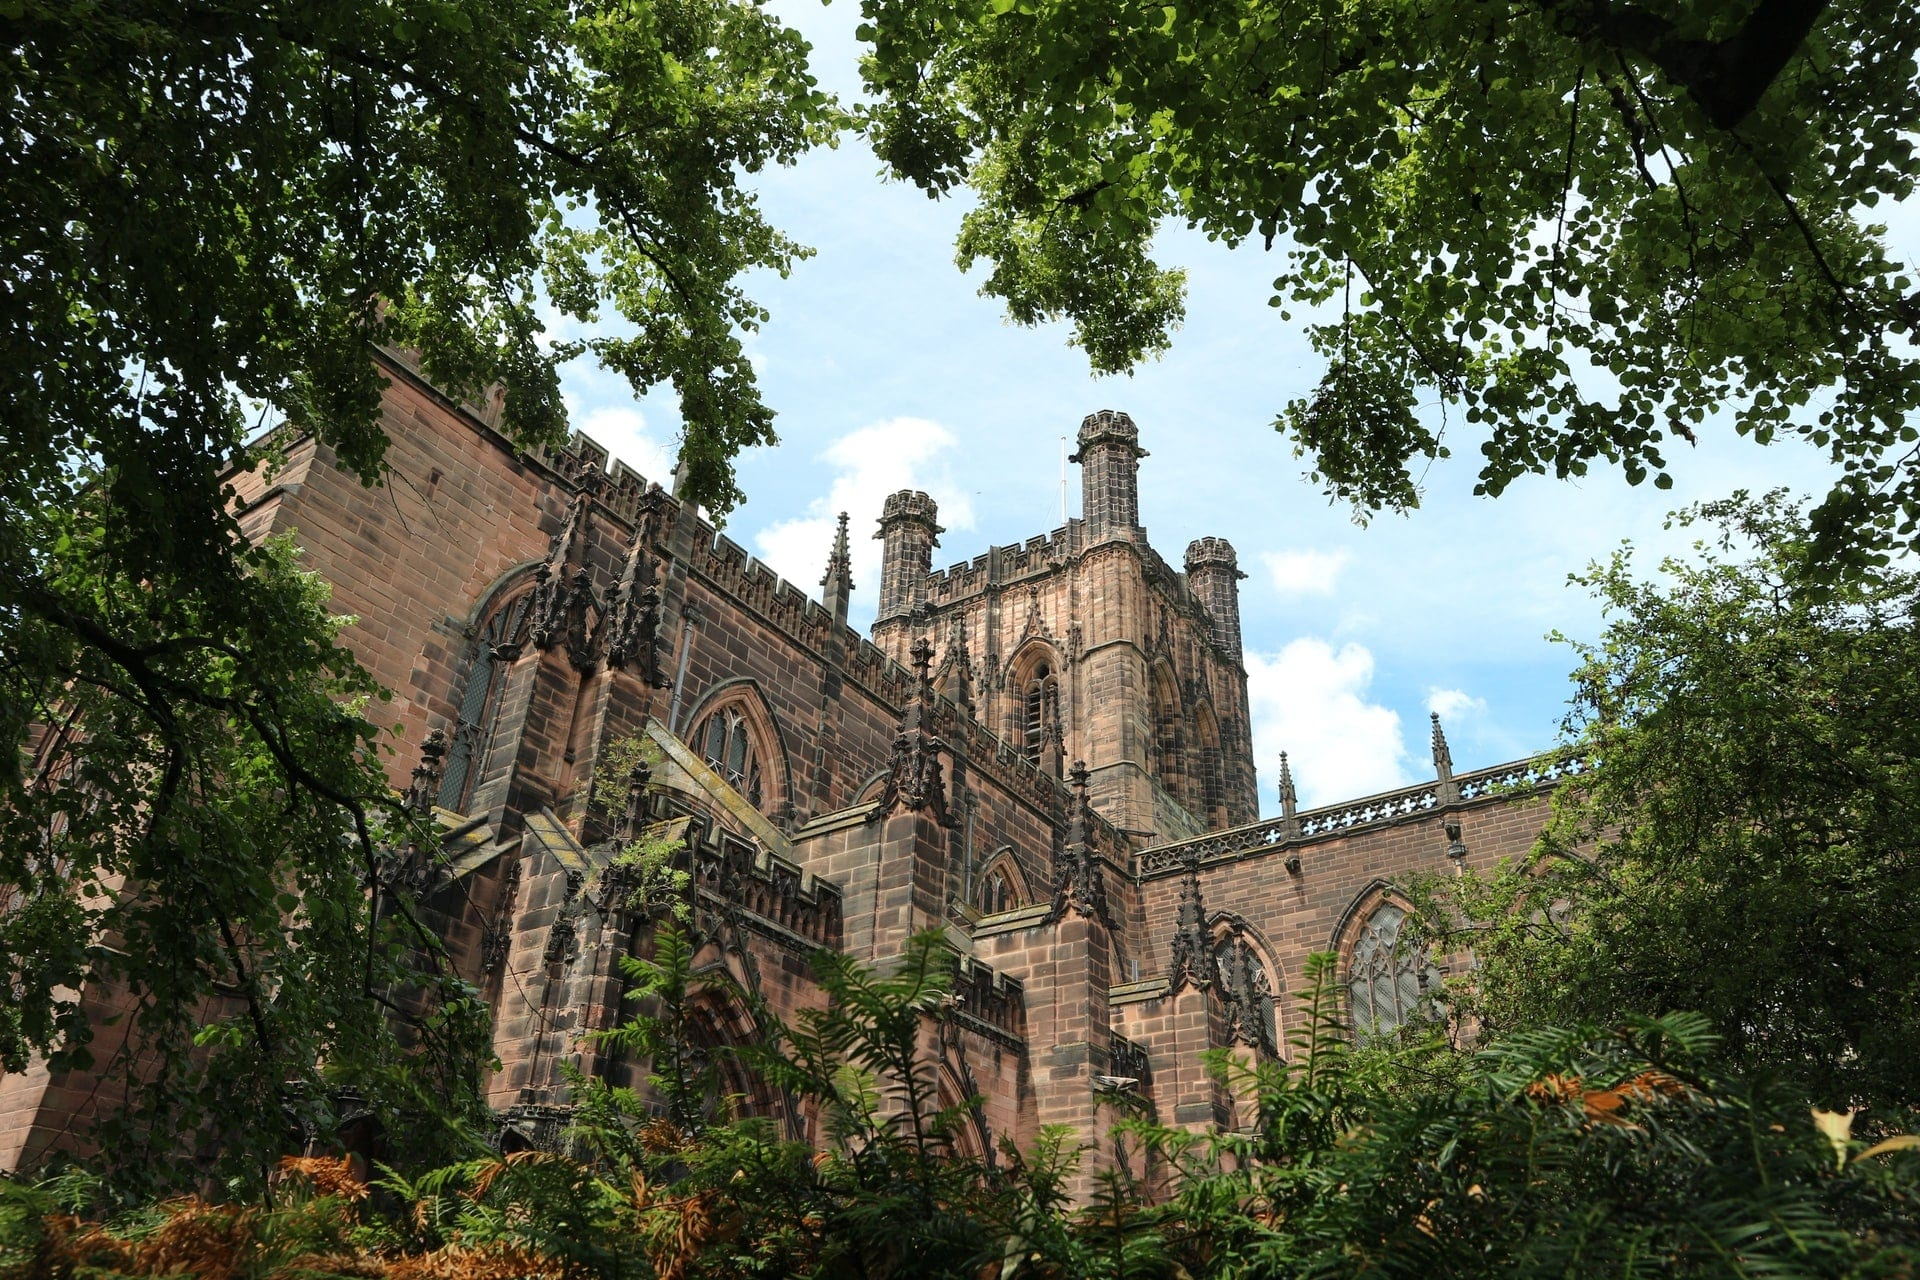 peeking-out-at-chester-cathedral-through-trees-greenery